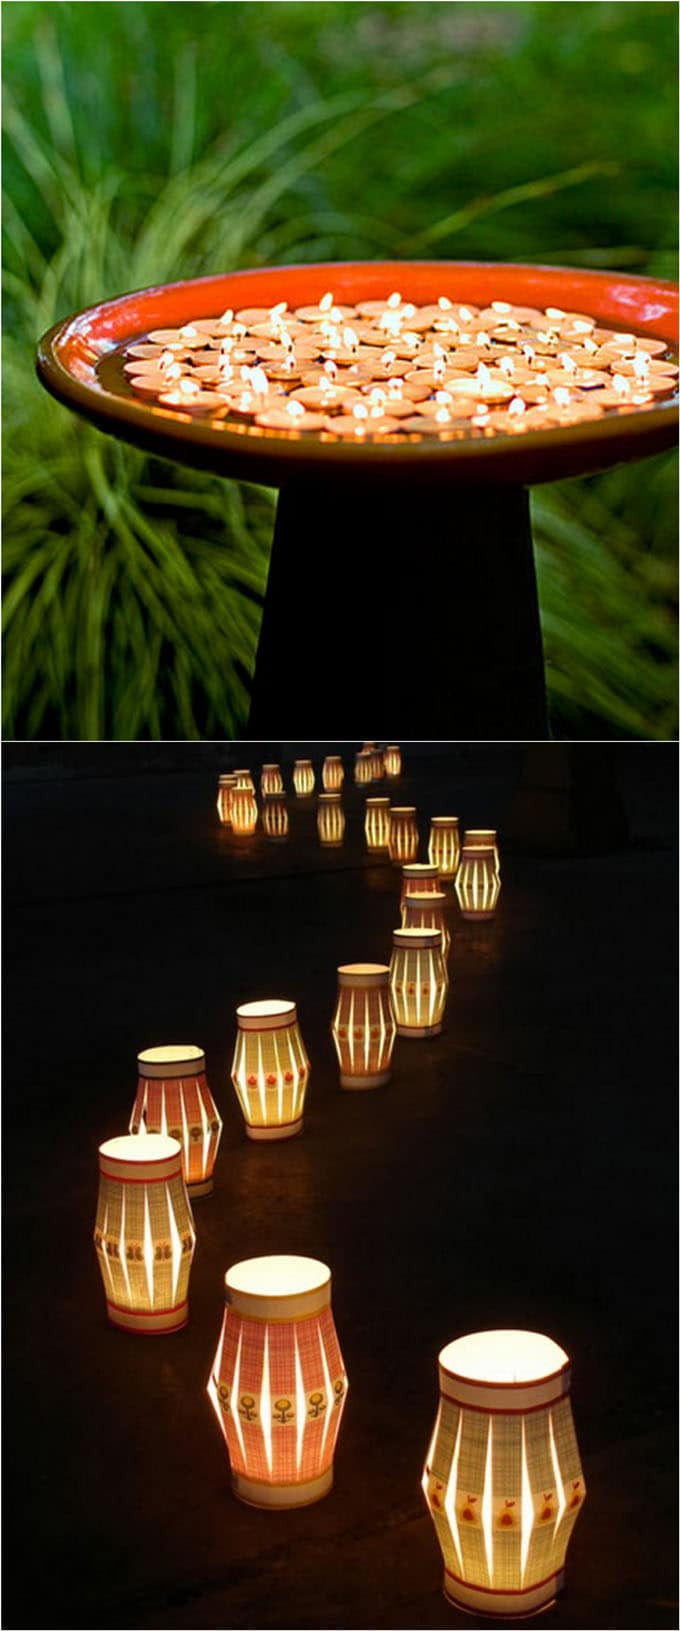 Best ideas about DIY Backyard Lighting . Save or Pin 28 Stunning DIY Outdoor Lighting Ideas & So Easy A Now.